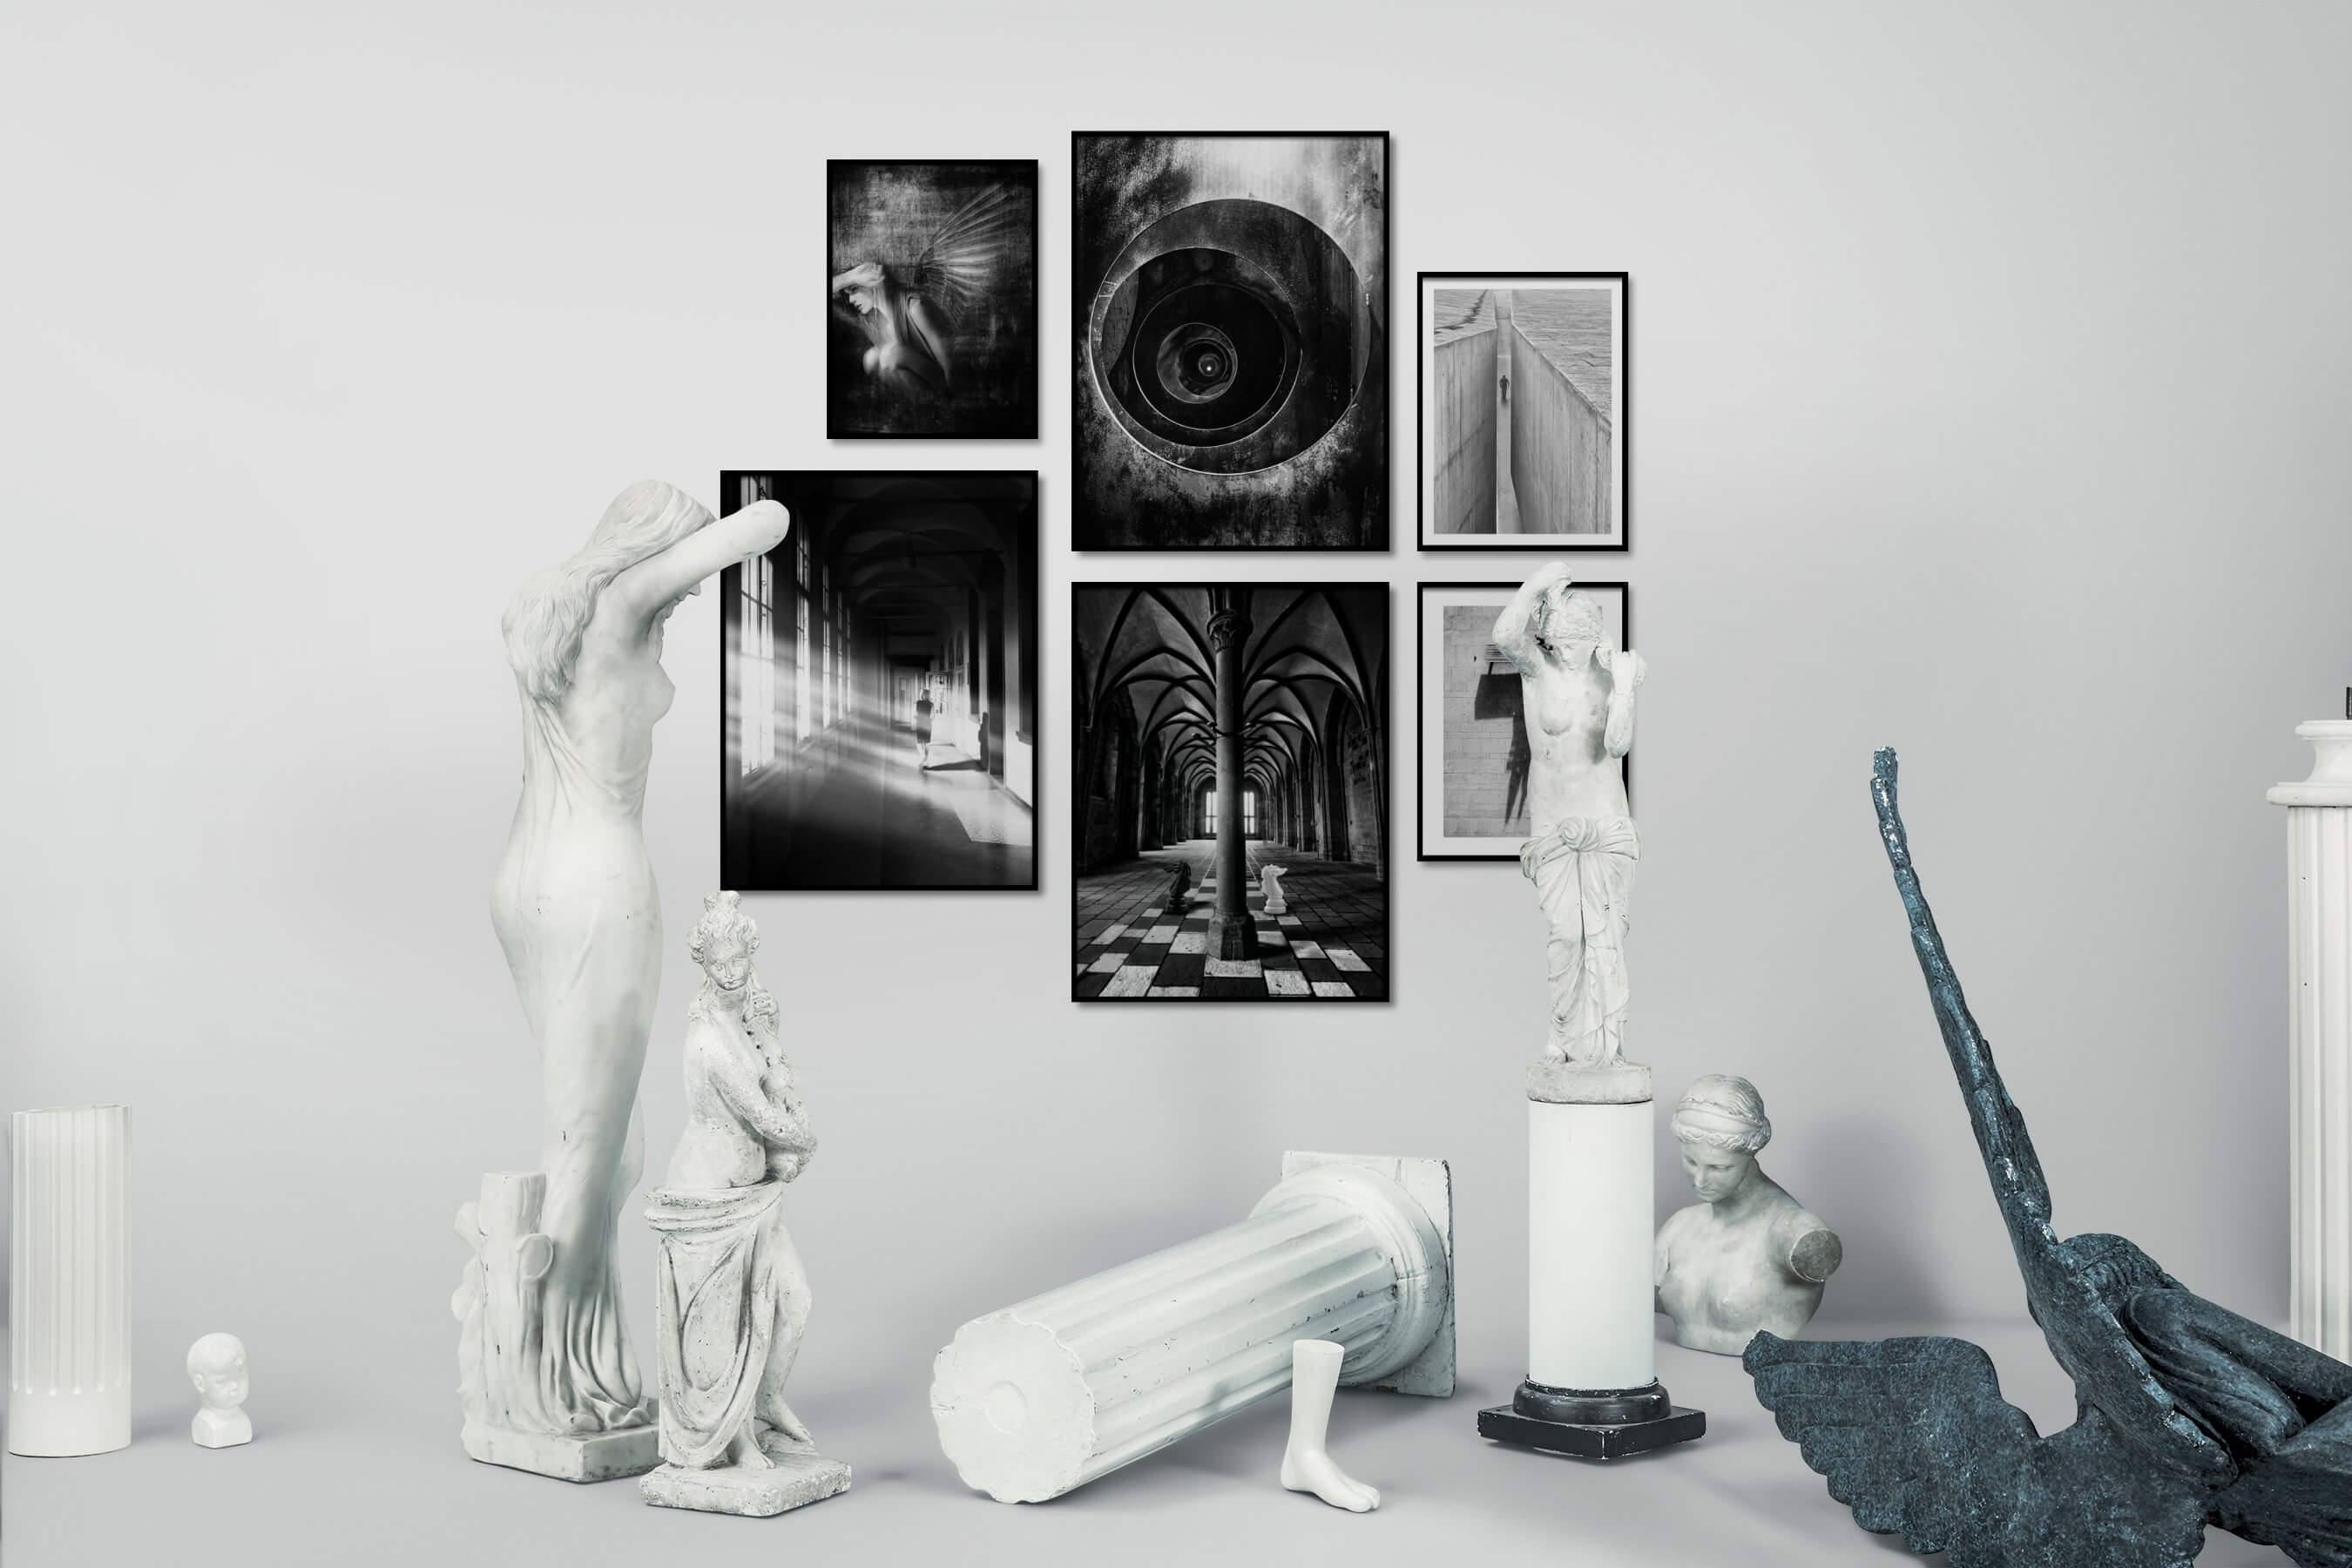 Gallery wall idea with six framed pictures arranged on a wall depicting Fashion & Beauty, Artsy, Black & White, For the Maximalist, For the Moderate, For the Minimalist, and City Life